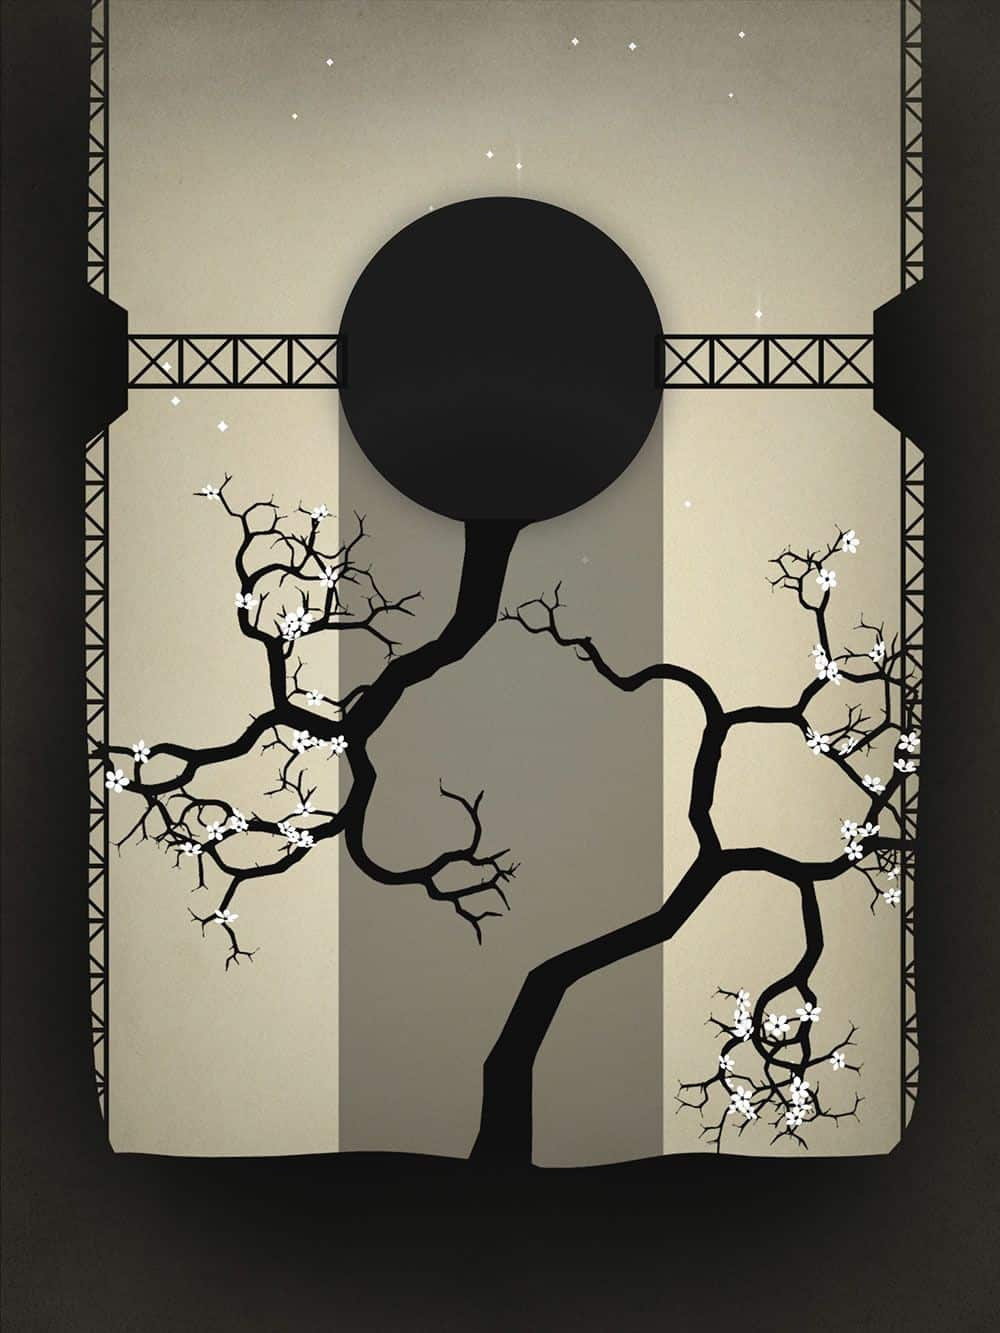 Not only does the app design of Prune amazes users, the music also produces zen-like sensations